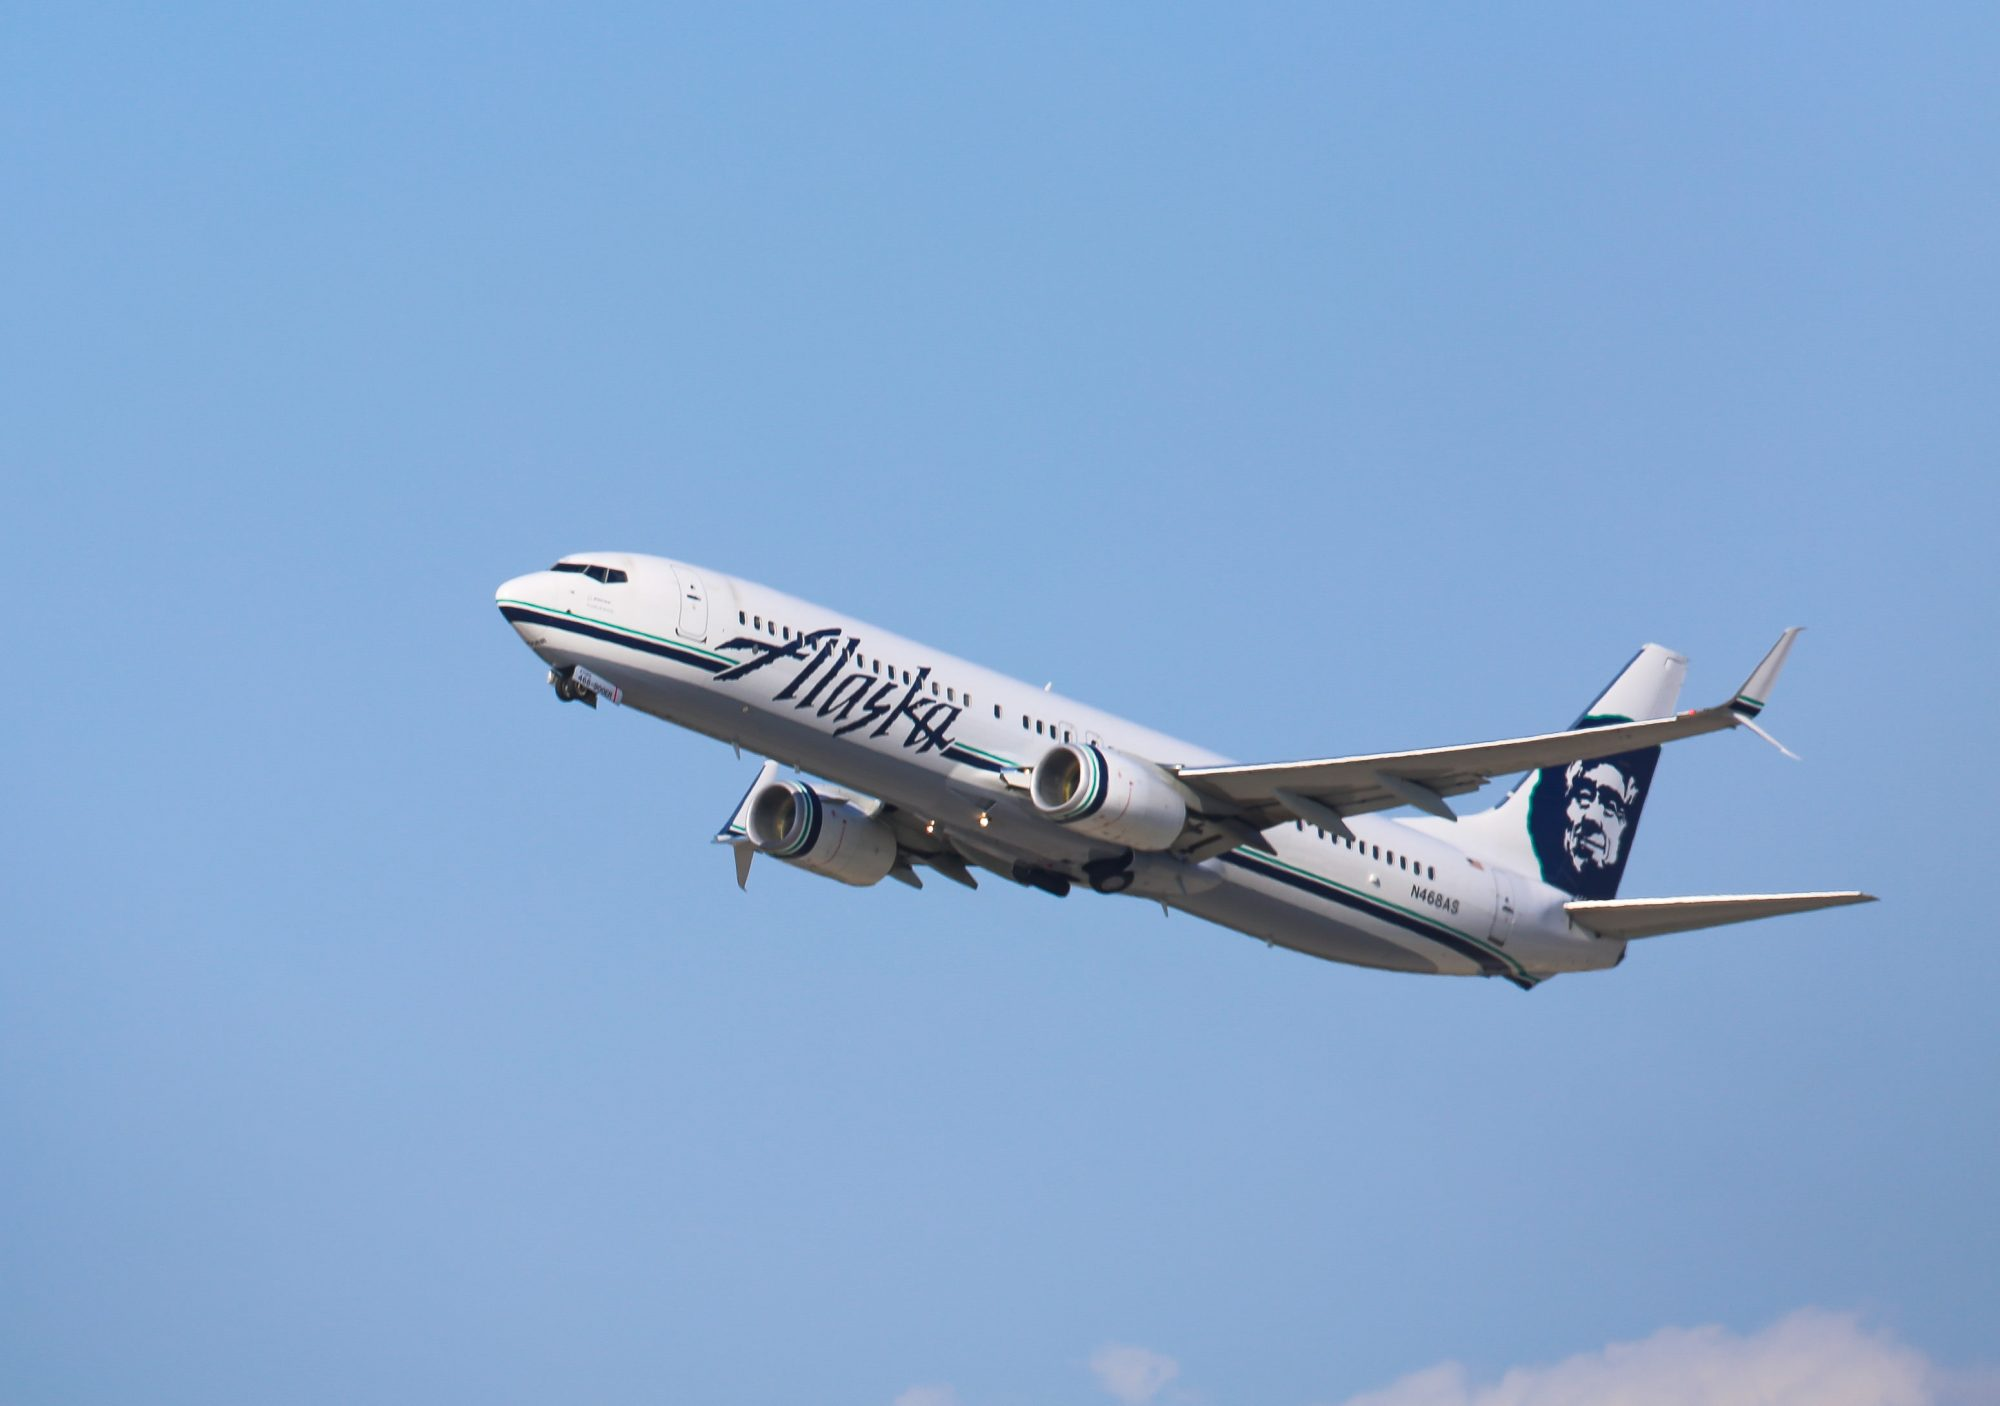 Alaska Airlines Is Offering Passengers Free Wine For National Drink Wine Day